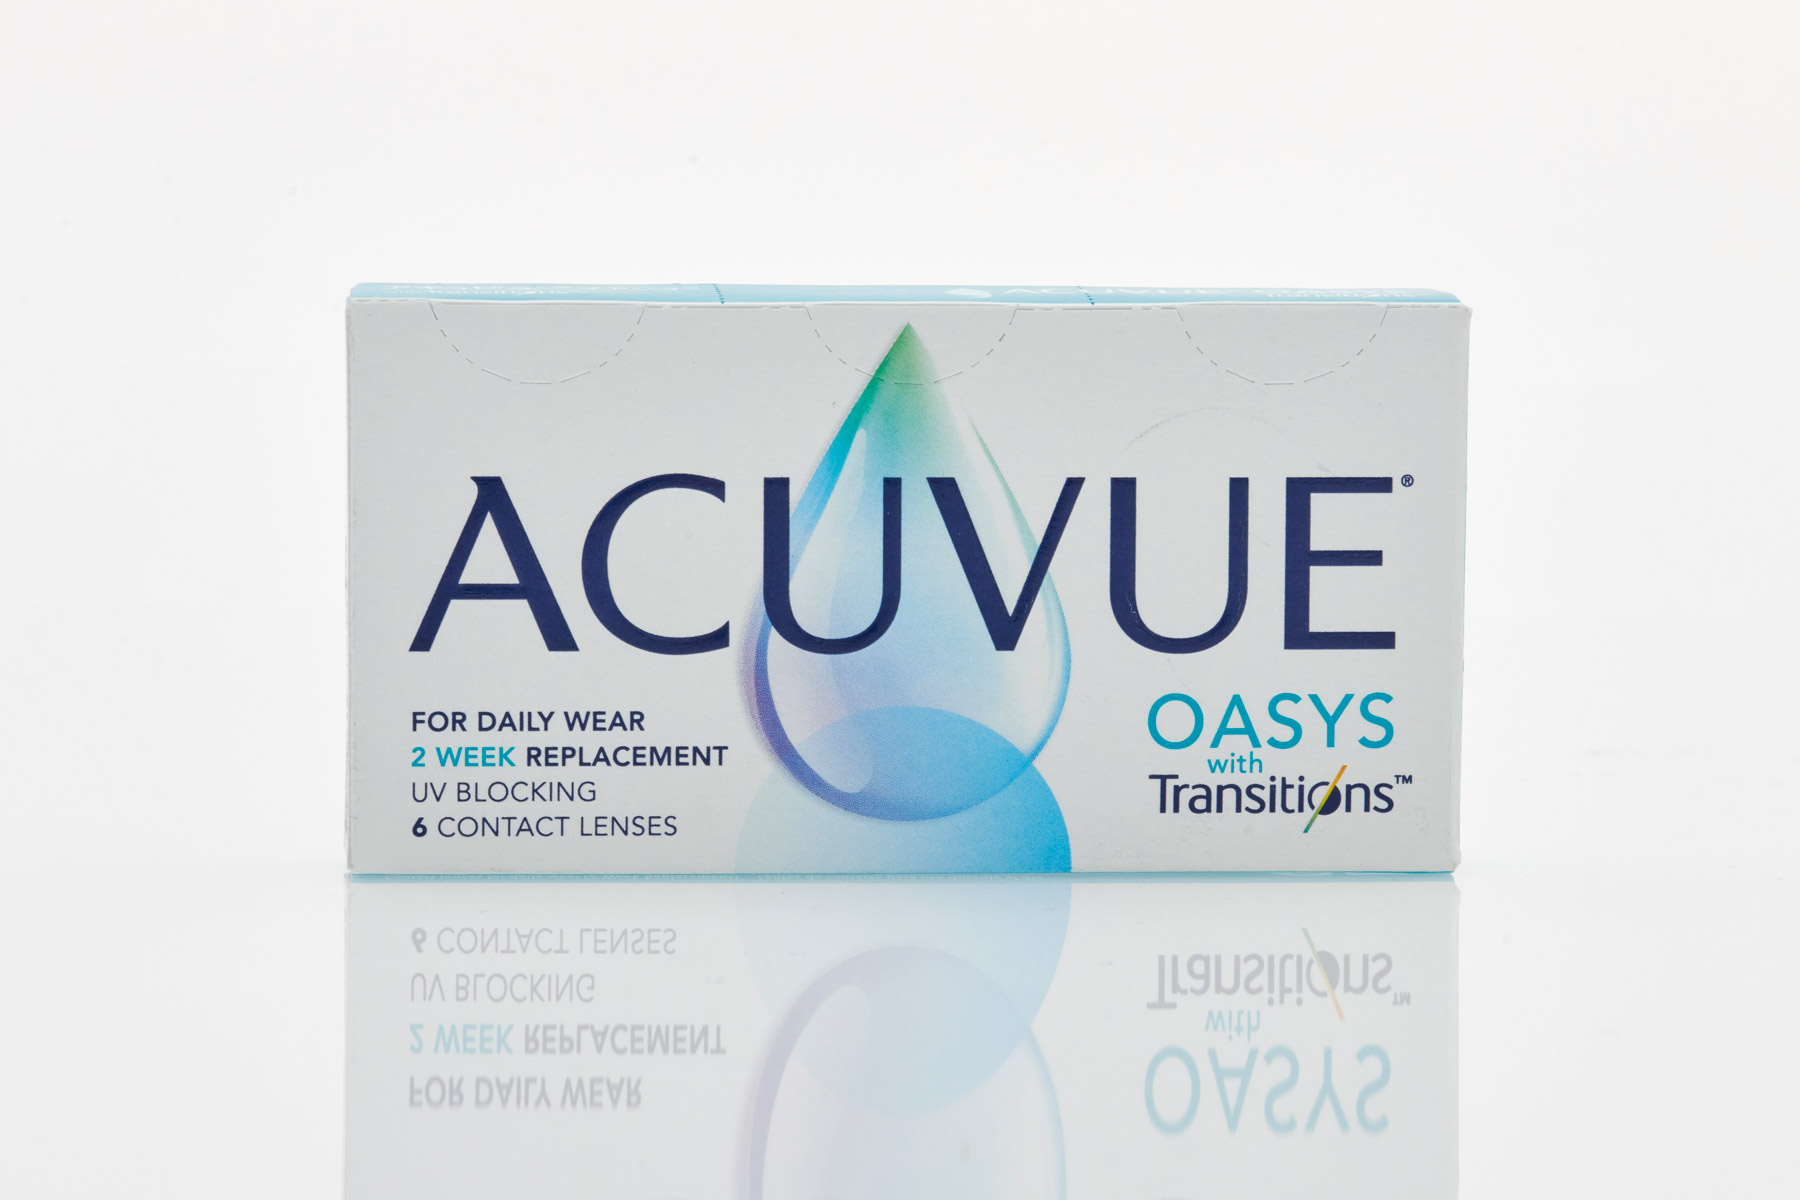 johnson & johnson Fortnight Contact Lenses ACUVUE Oasys with Transitions